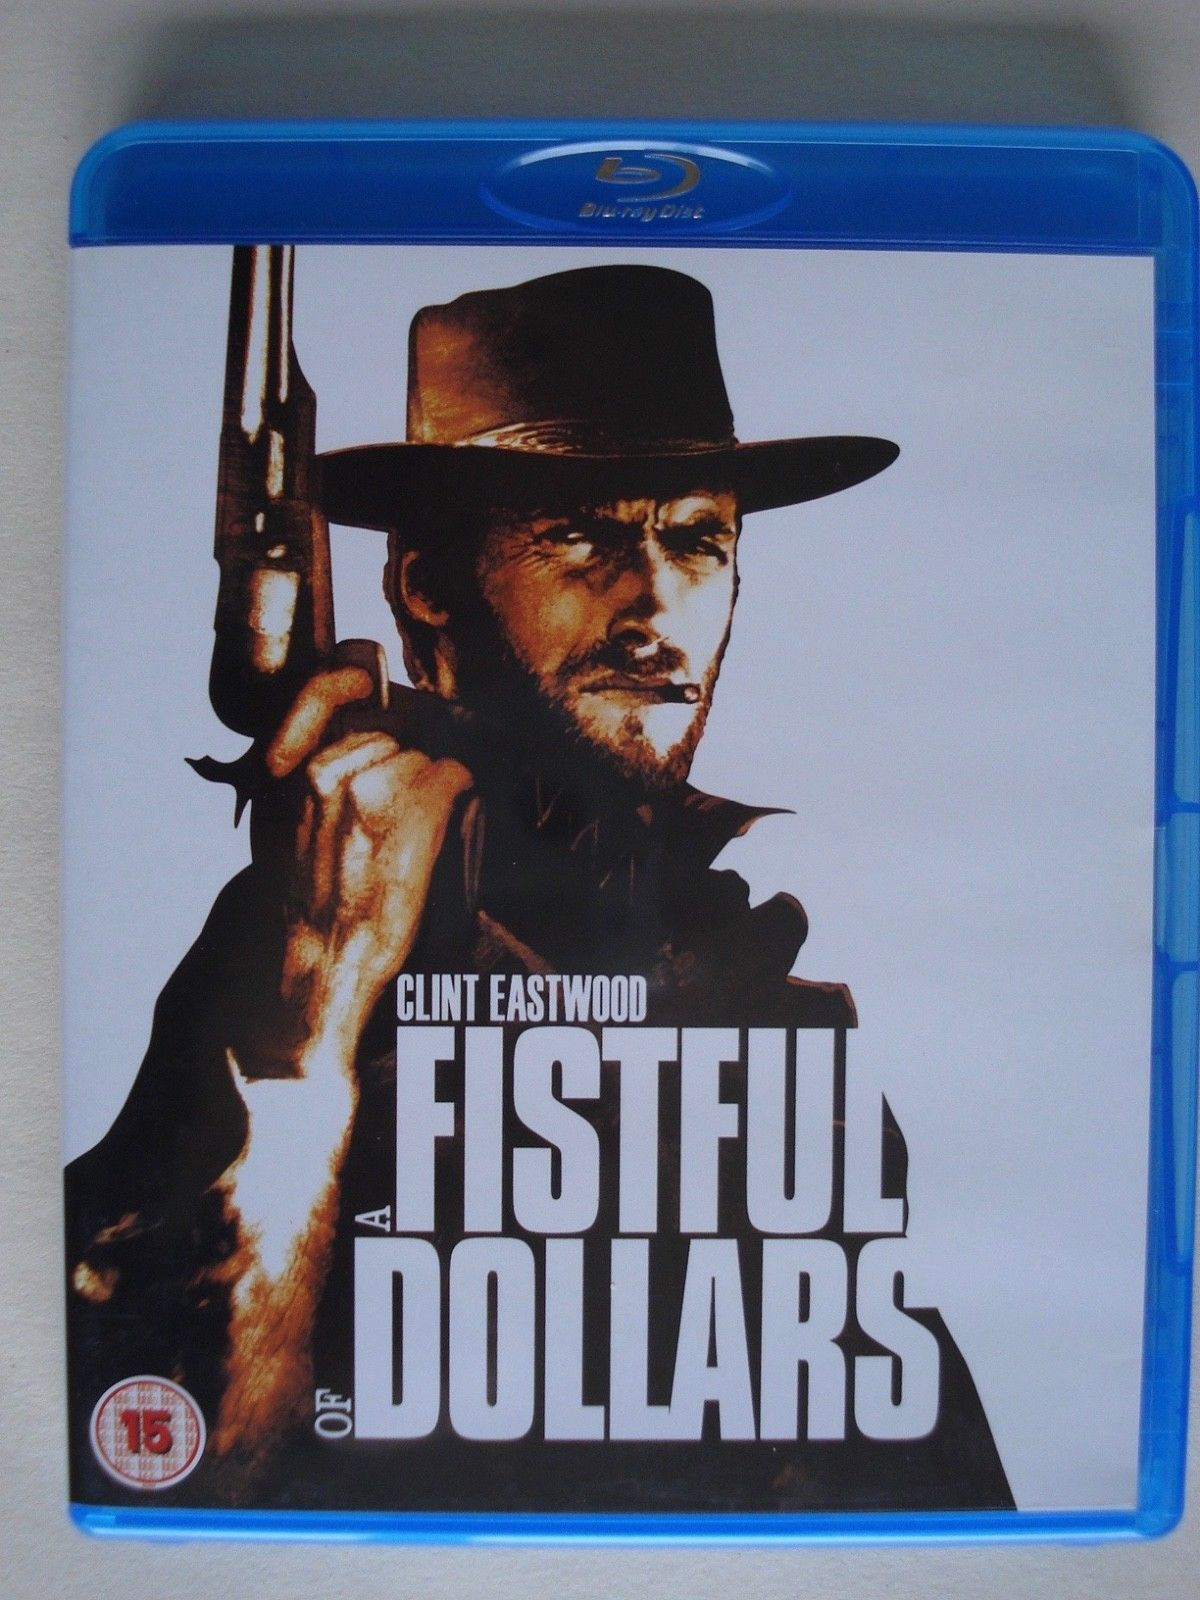 ZA GARSC DOLAROW BLU-RAY CLINT EASTWOOD